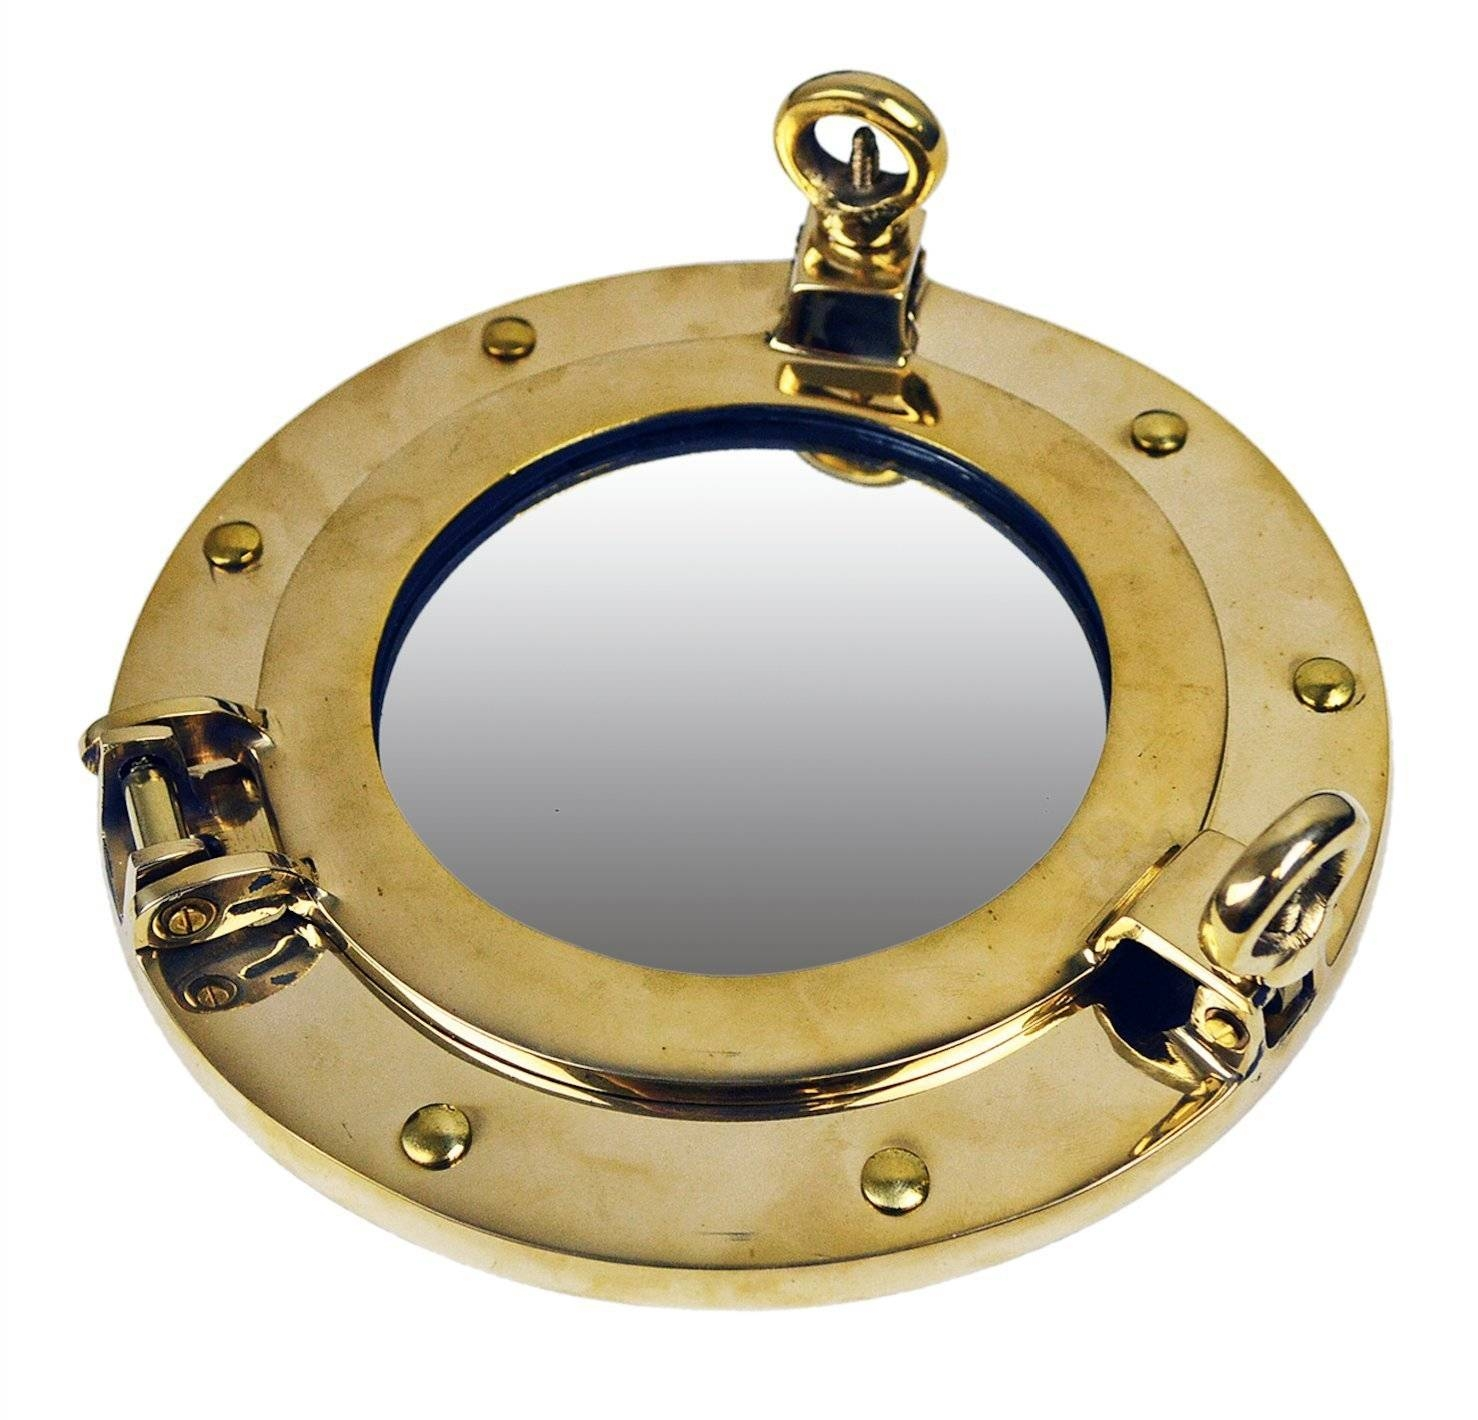 Brass Ships Porthole Mirrors Nickle Finish Porthole Mirrors Chrome with Chrome Porthole Mirrors (Image 9 of 25)